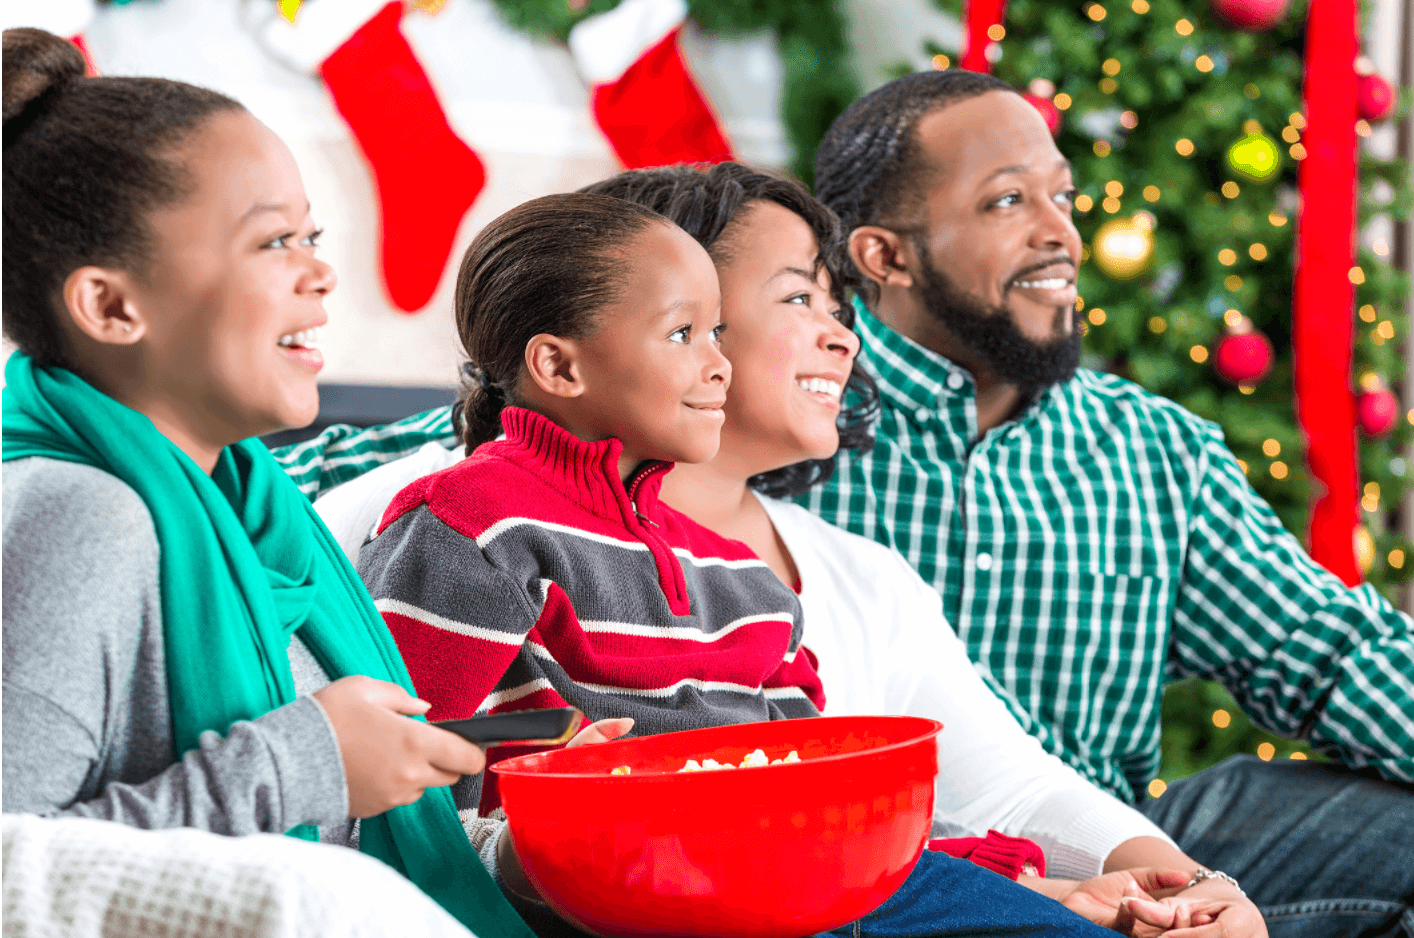 5 Unsung Holiday Movies for the Whole Family